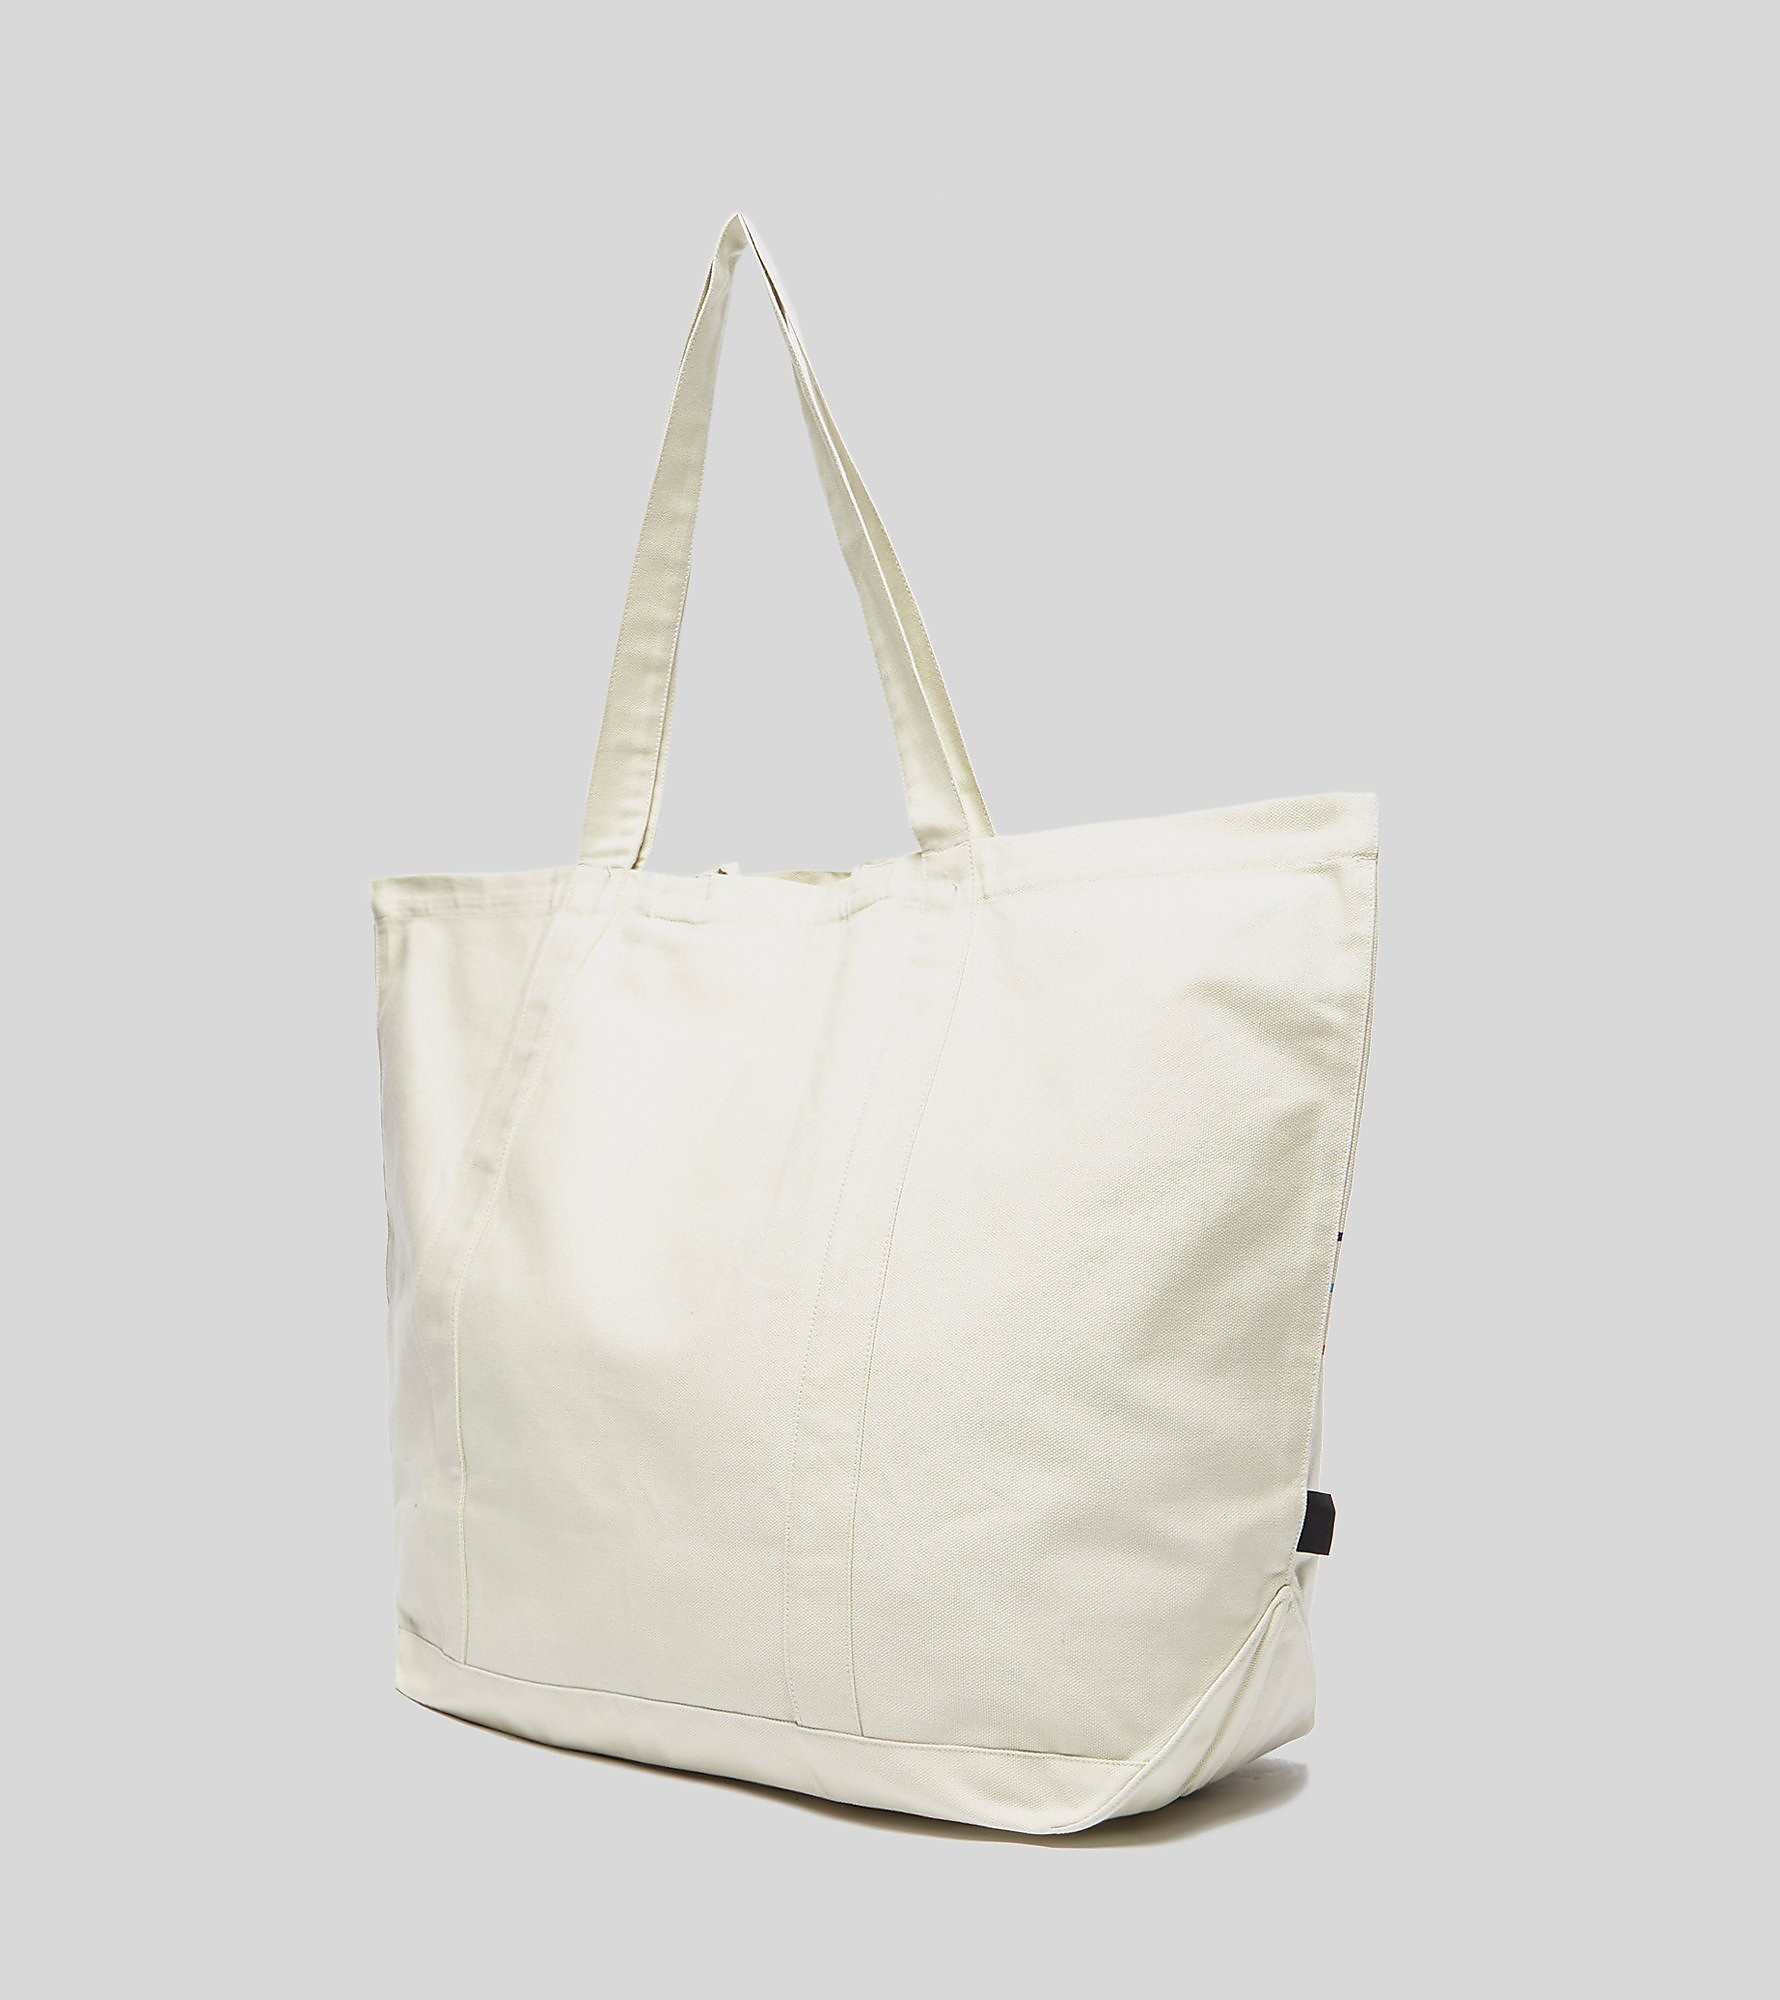 Patagonia Tote Bag Tide Ride All Day